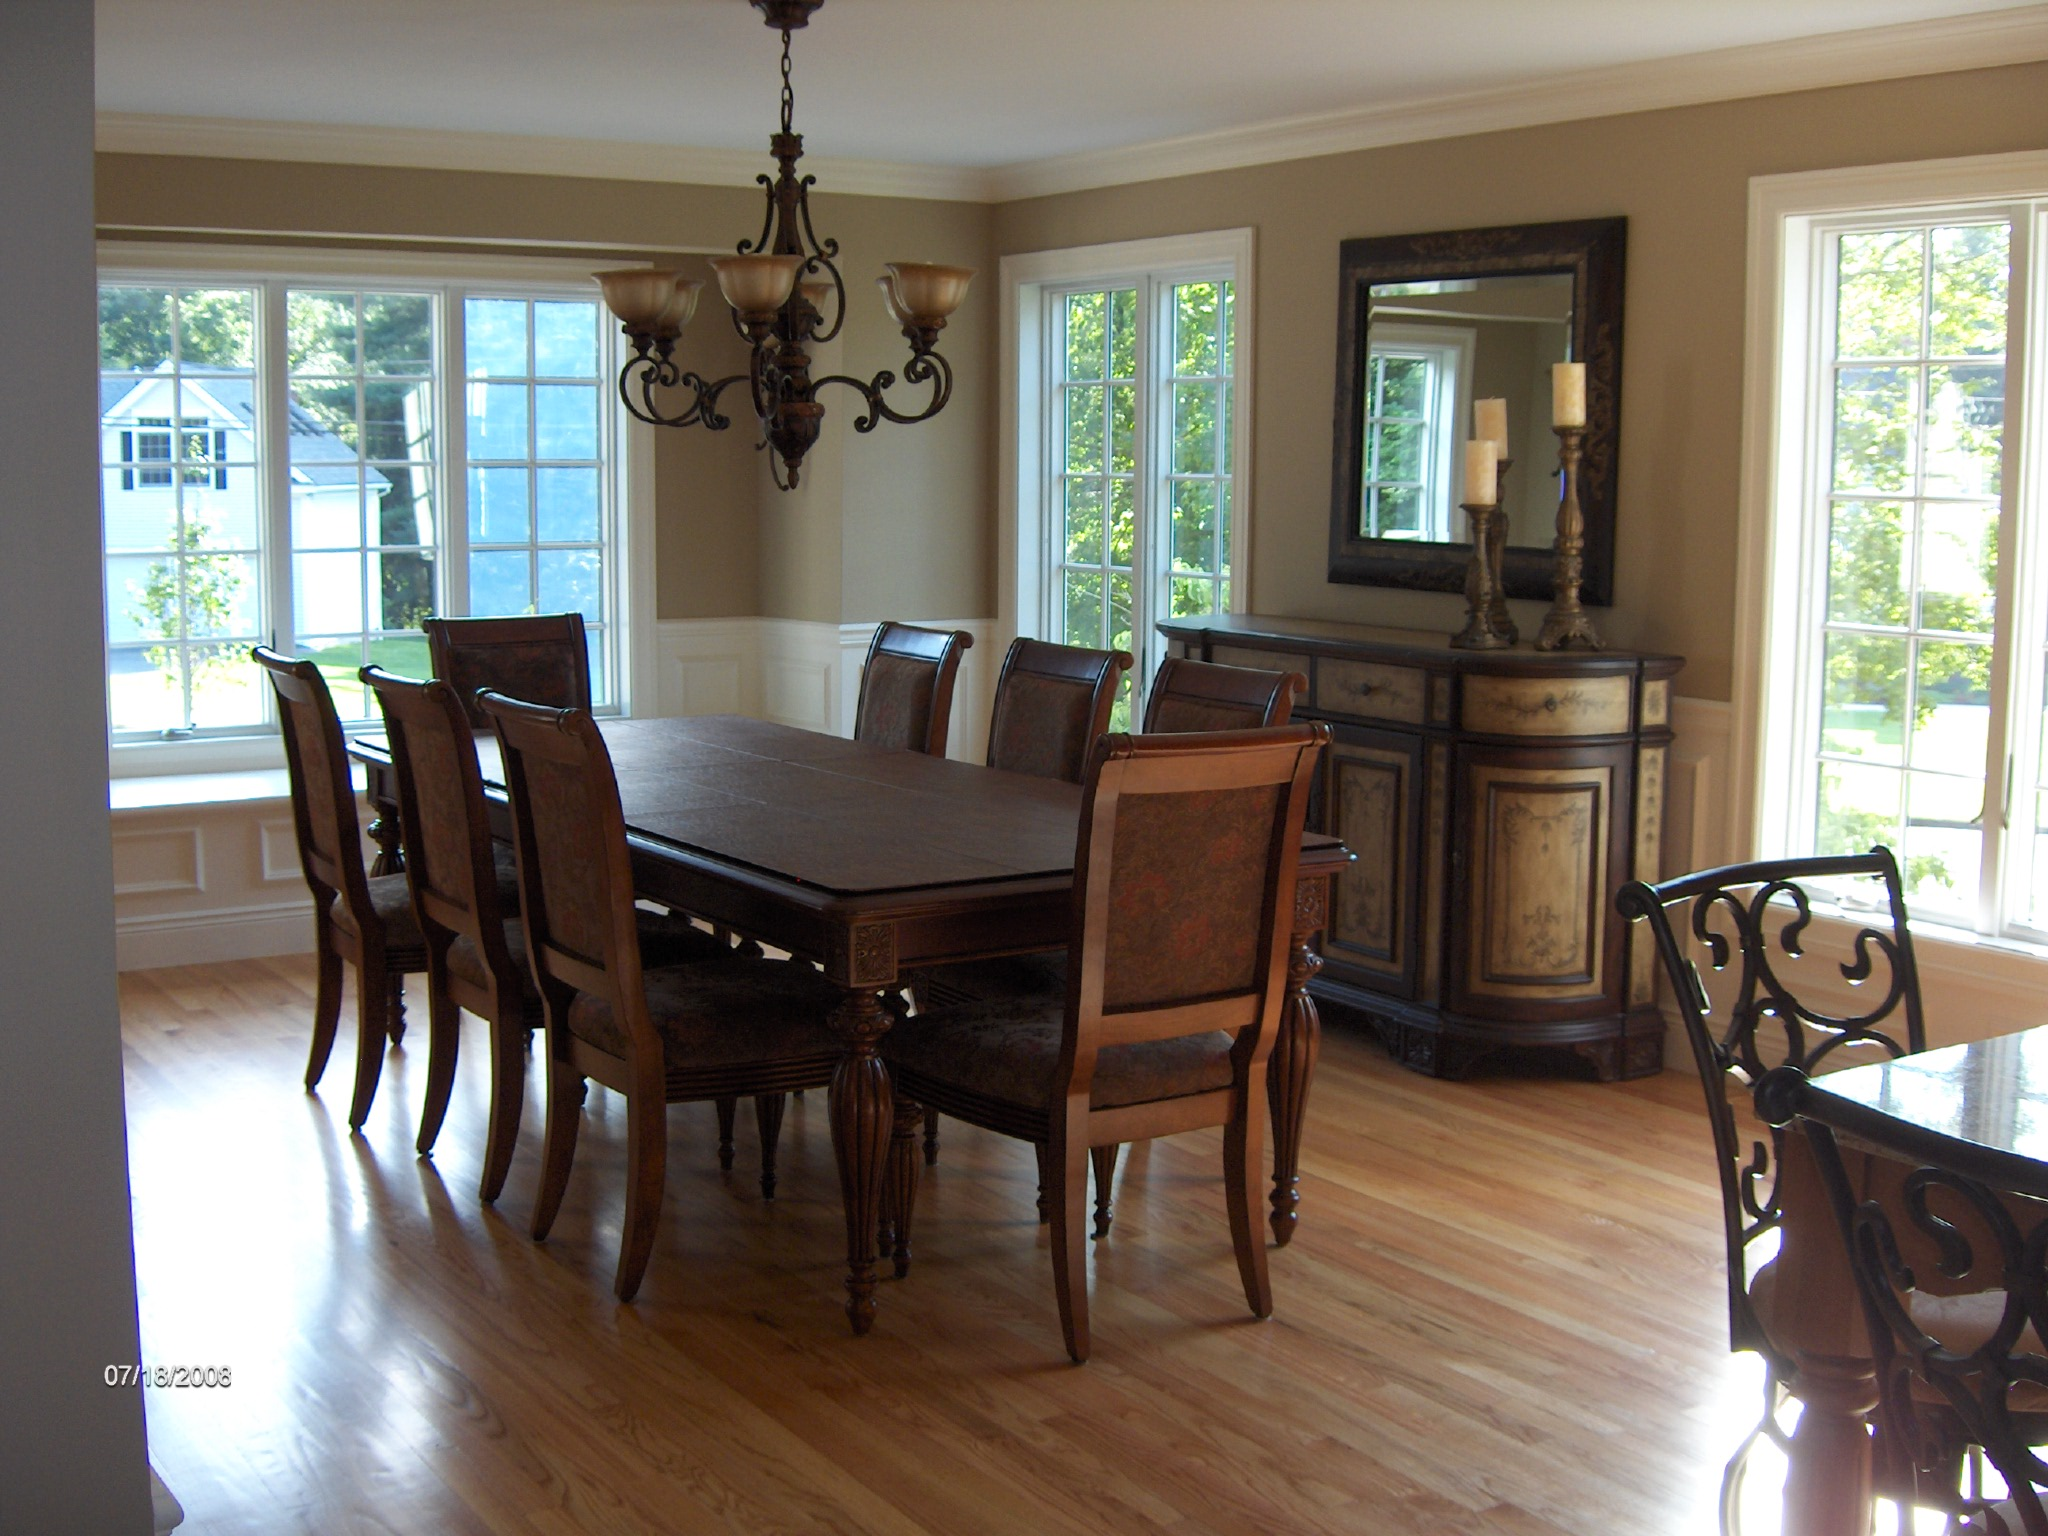 photos of dining rooms photo - 1